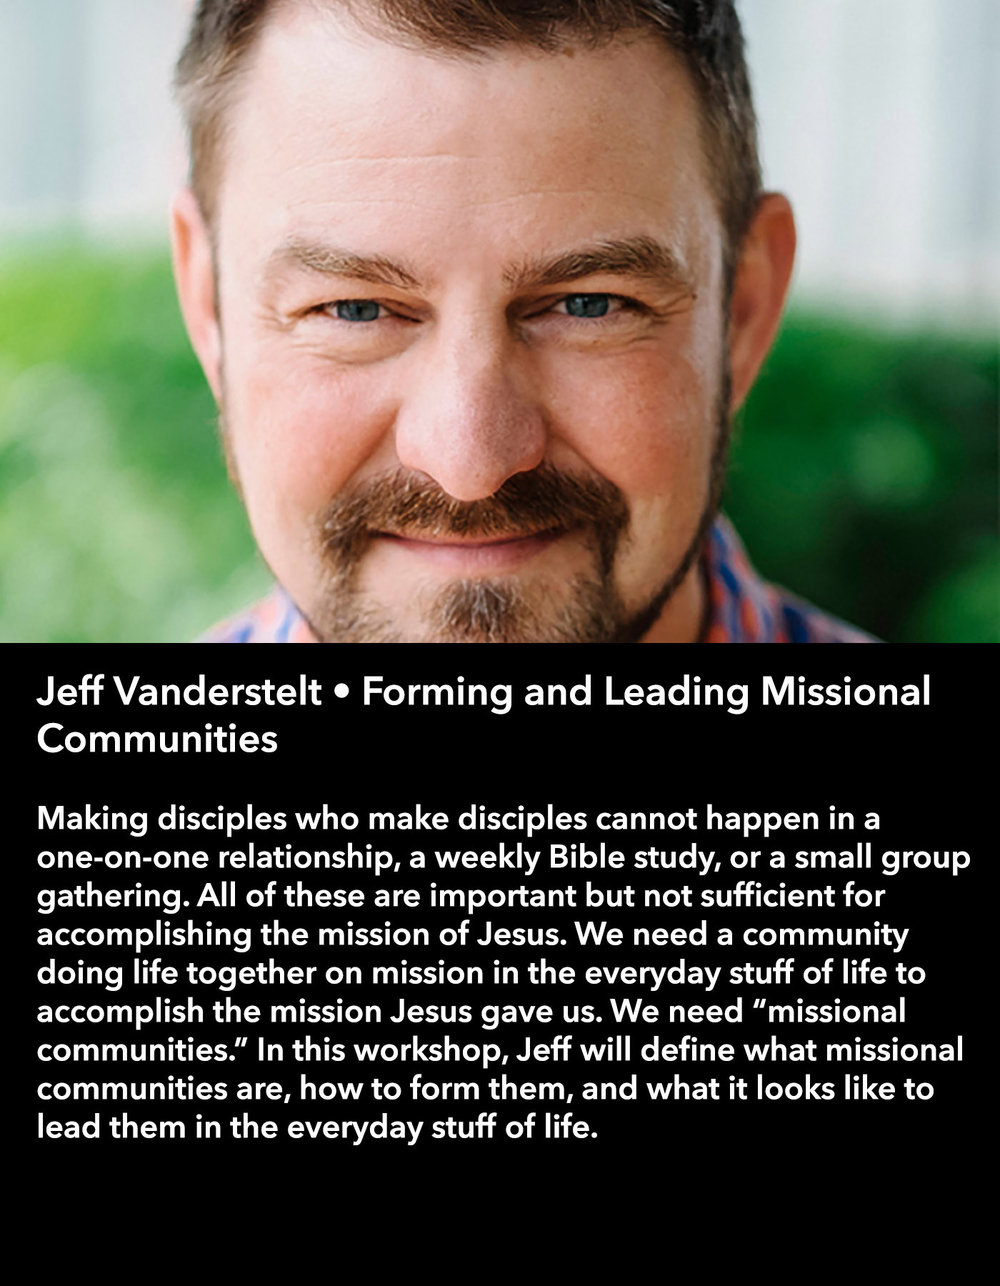 Jeff Vanderstelt • Forming and Leading Missional Communities • Friday Afternoon, March 17 • 3:30 – 4:45 pm